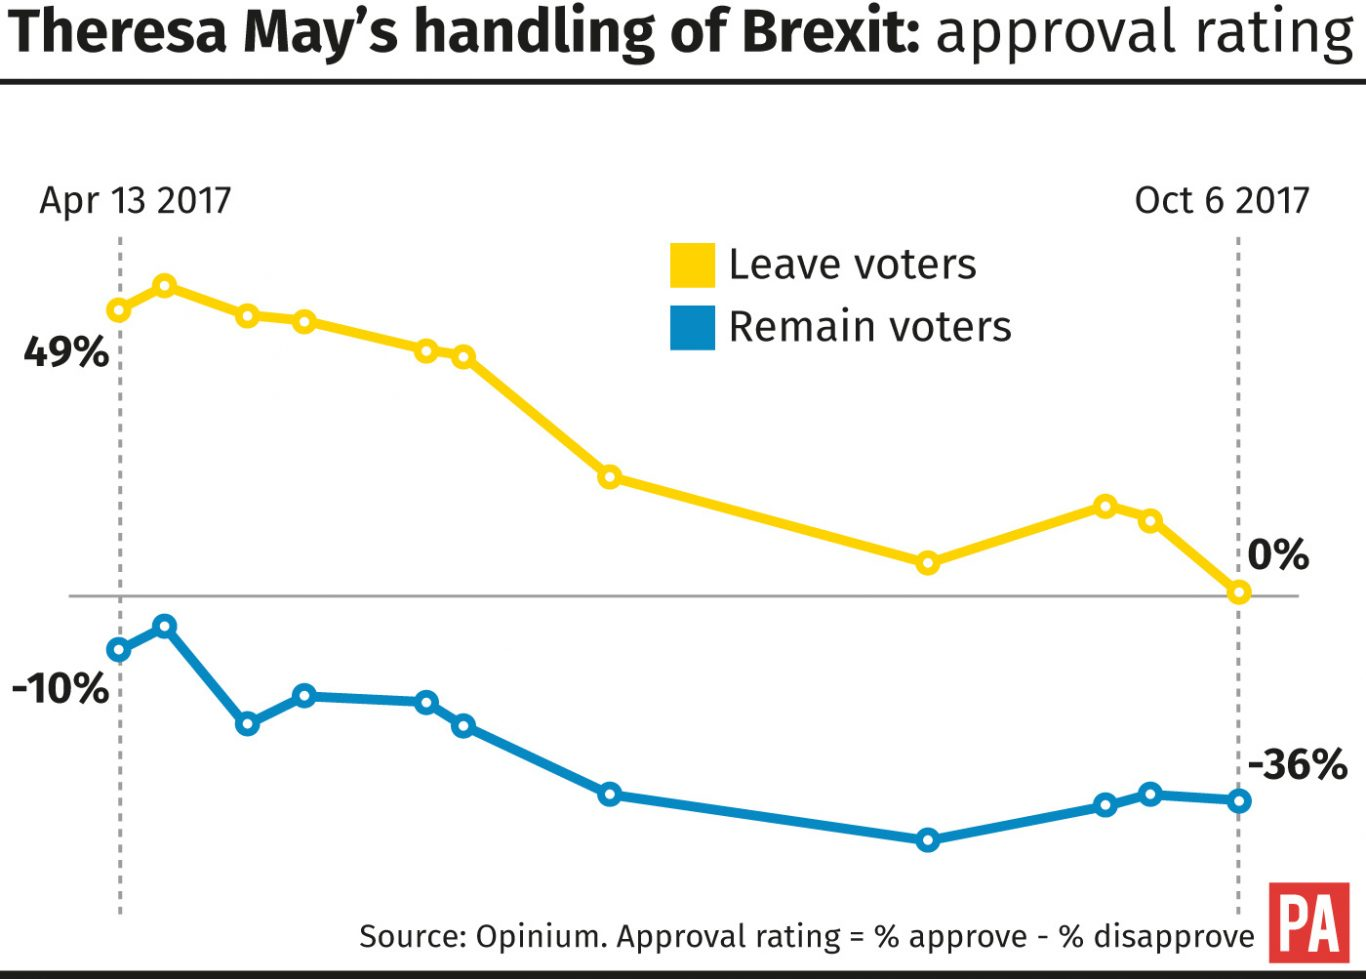 Theresa May's handling of Brexit: approval rating